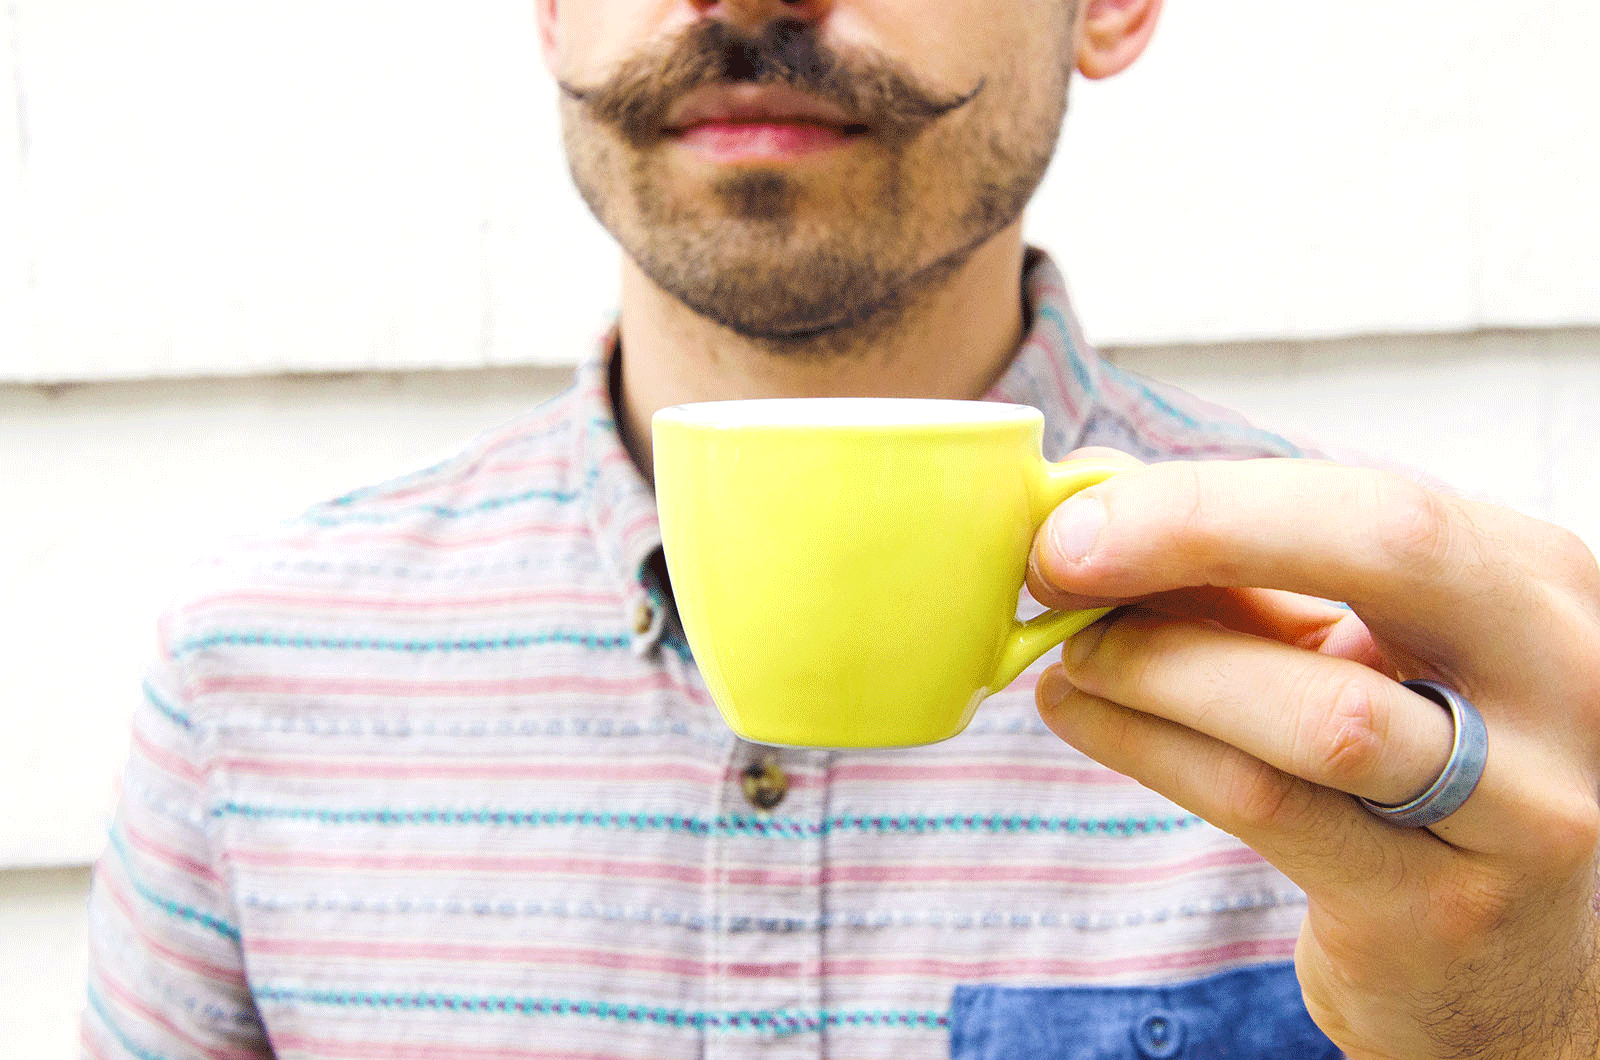 effects of a mustache: altering customer perception